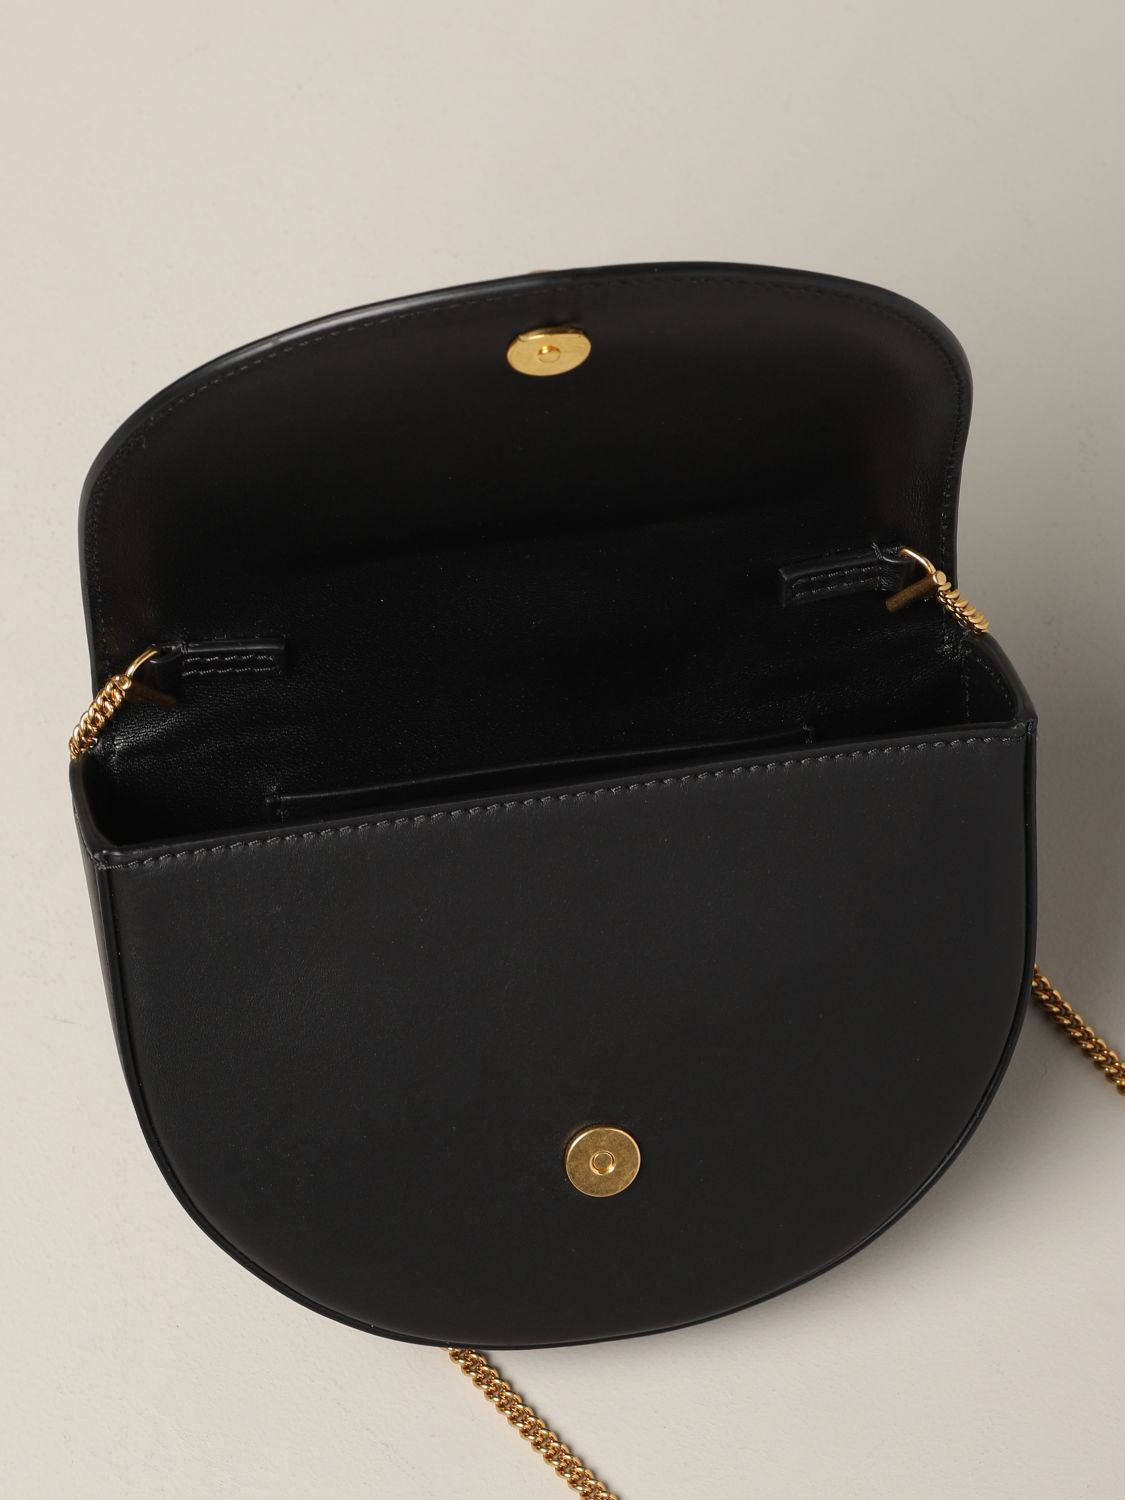 Versace leather bag / pouch with V Virtus black 6